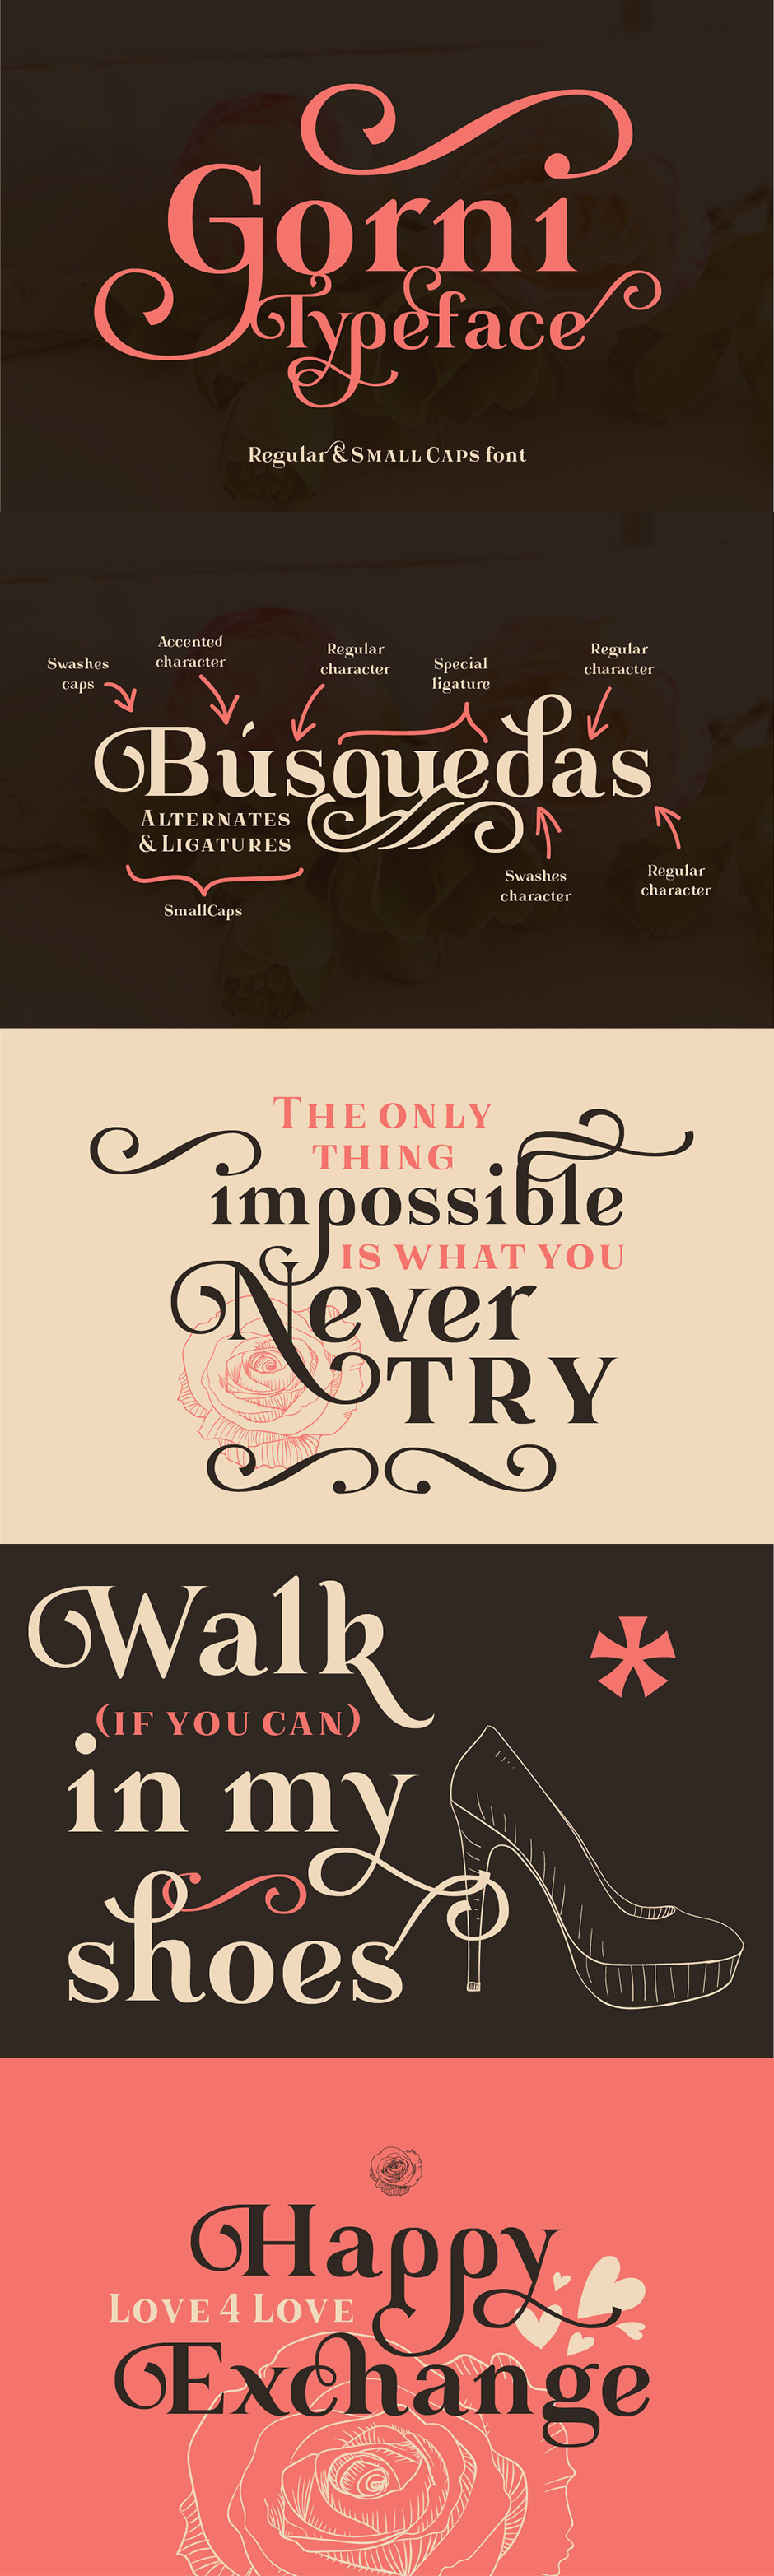 Definitive Fonts Bundle Gorni Typeface